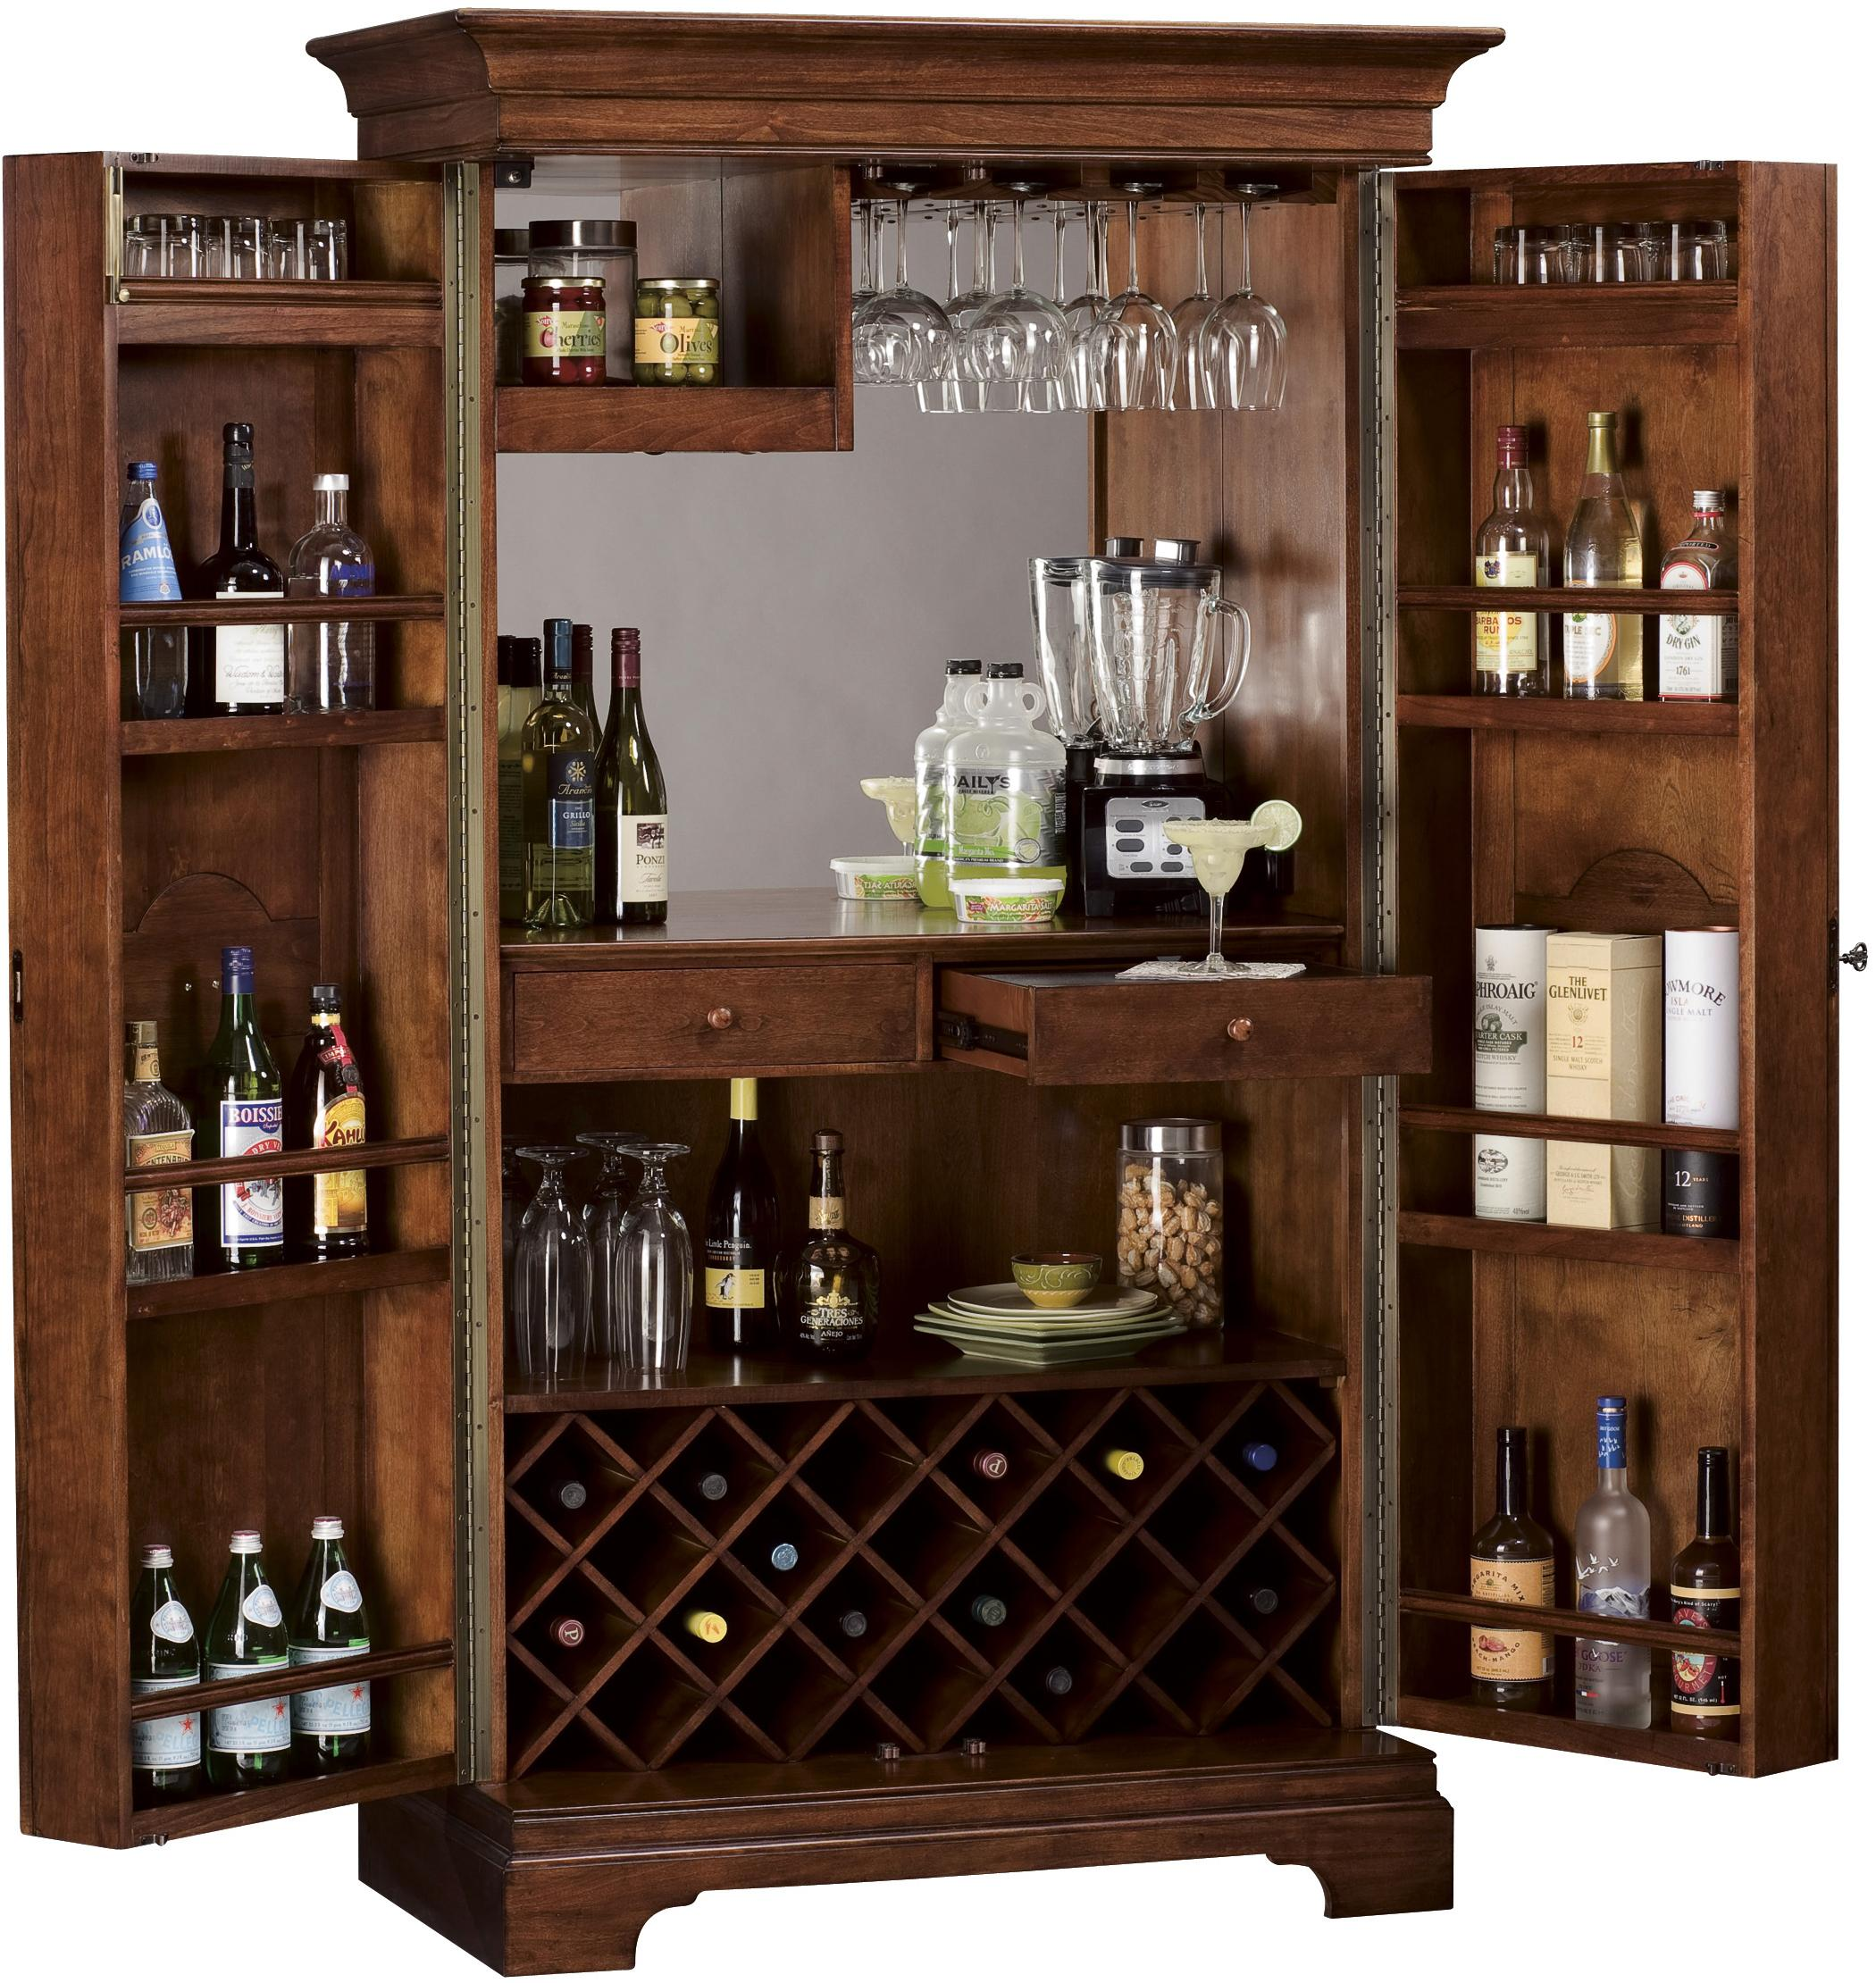 Barossa Valley Hide A Bar Cabinet Stores Up To 22 Bottles Of Wine By Howard Miller Wolf And